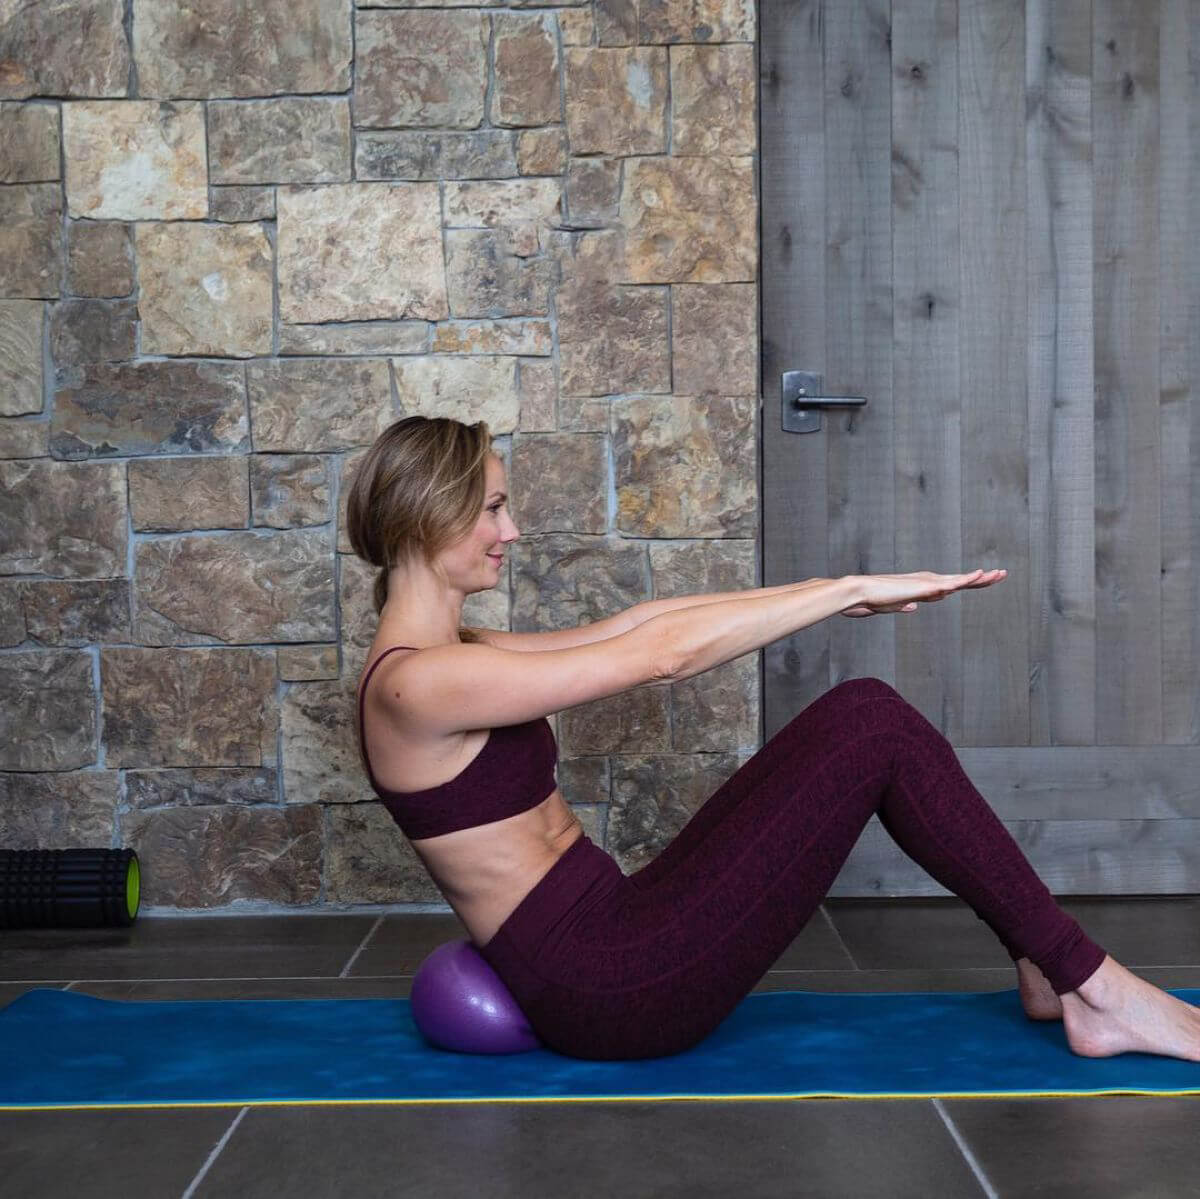 Stacy Keibler Working Out in Instagram Pictures 2018/12/26 1